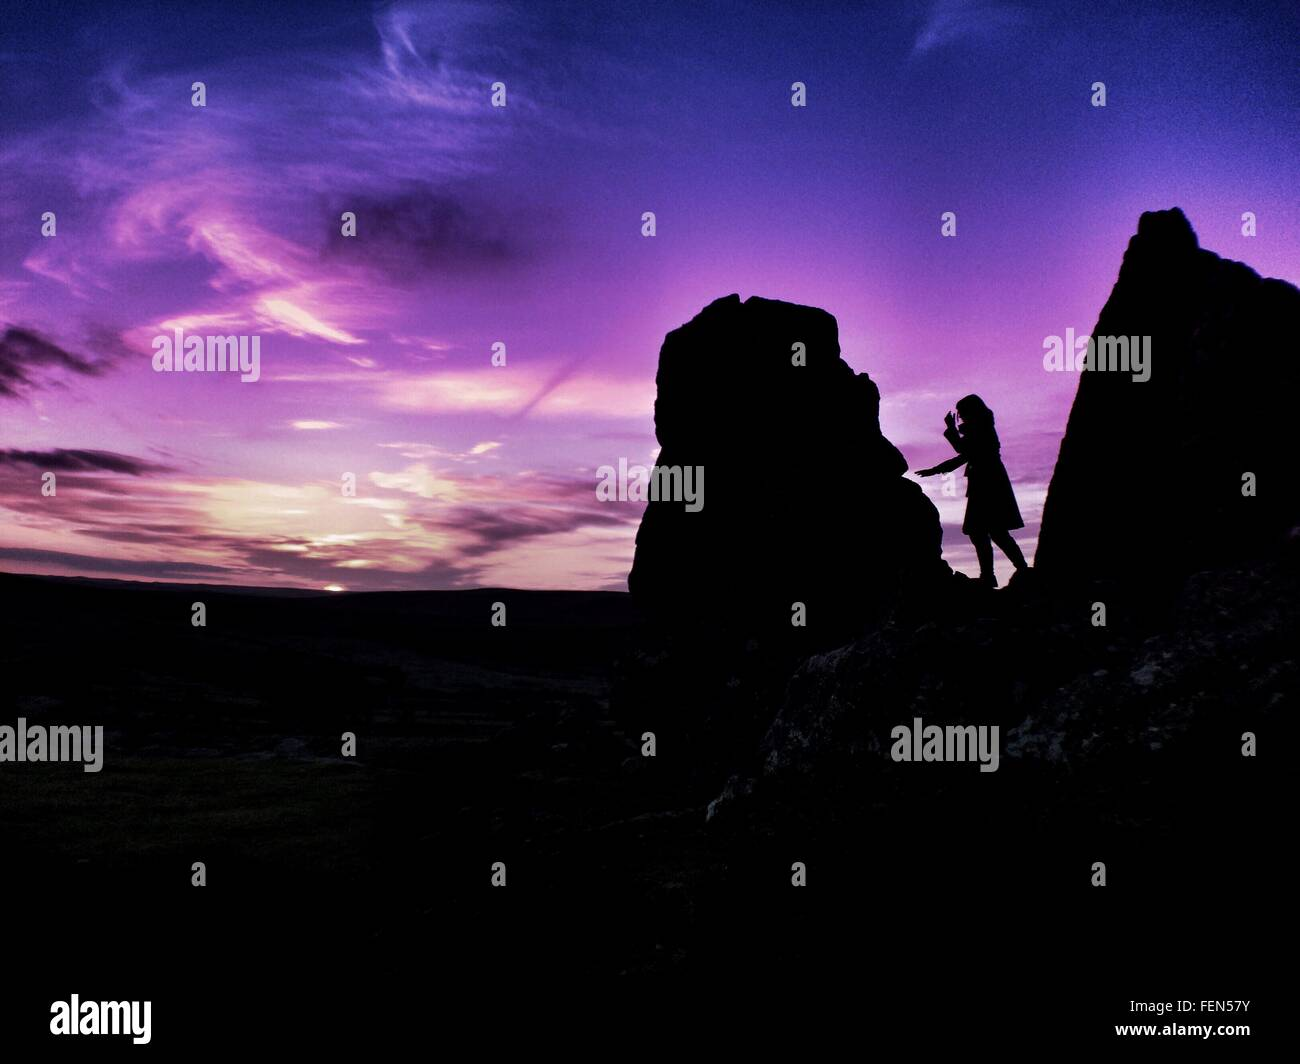 Silhouette Woman On Rocks In Dartmoor National Park At Dusk - Stock Image